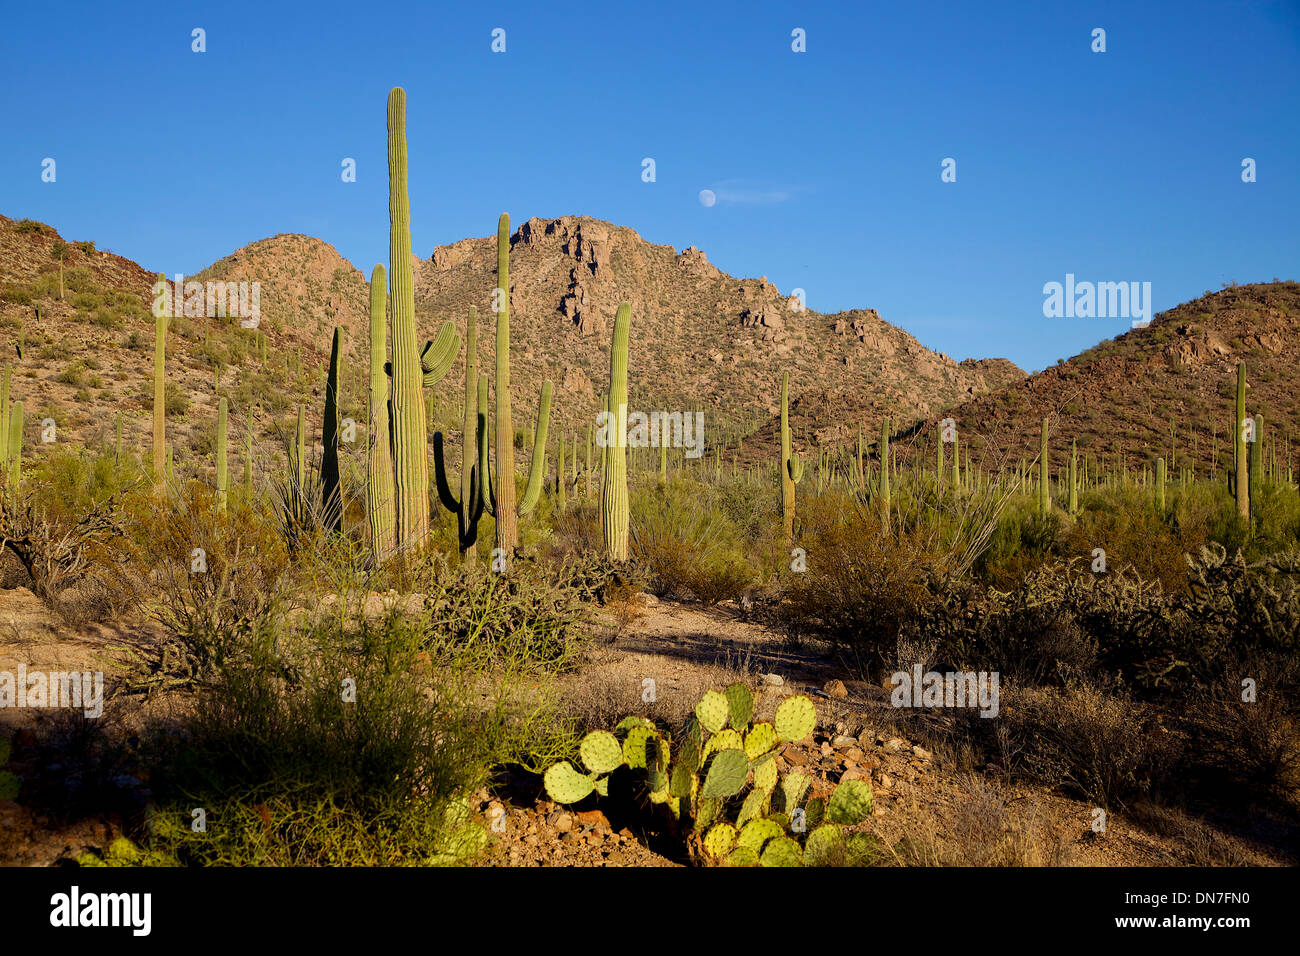 View of Saguaro National Park, Arizona, United States of America, USA at sunset. Landscape, nature, wilderness, plants - Stock Image